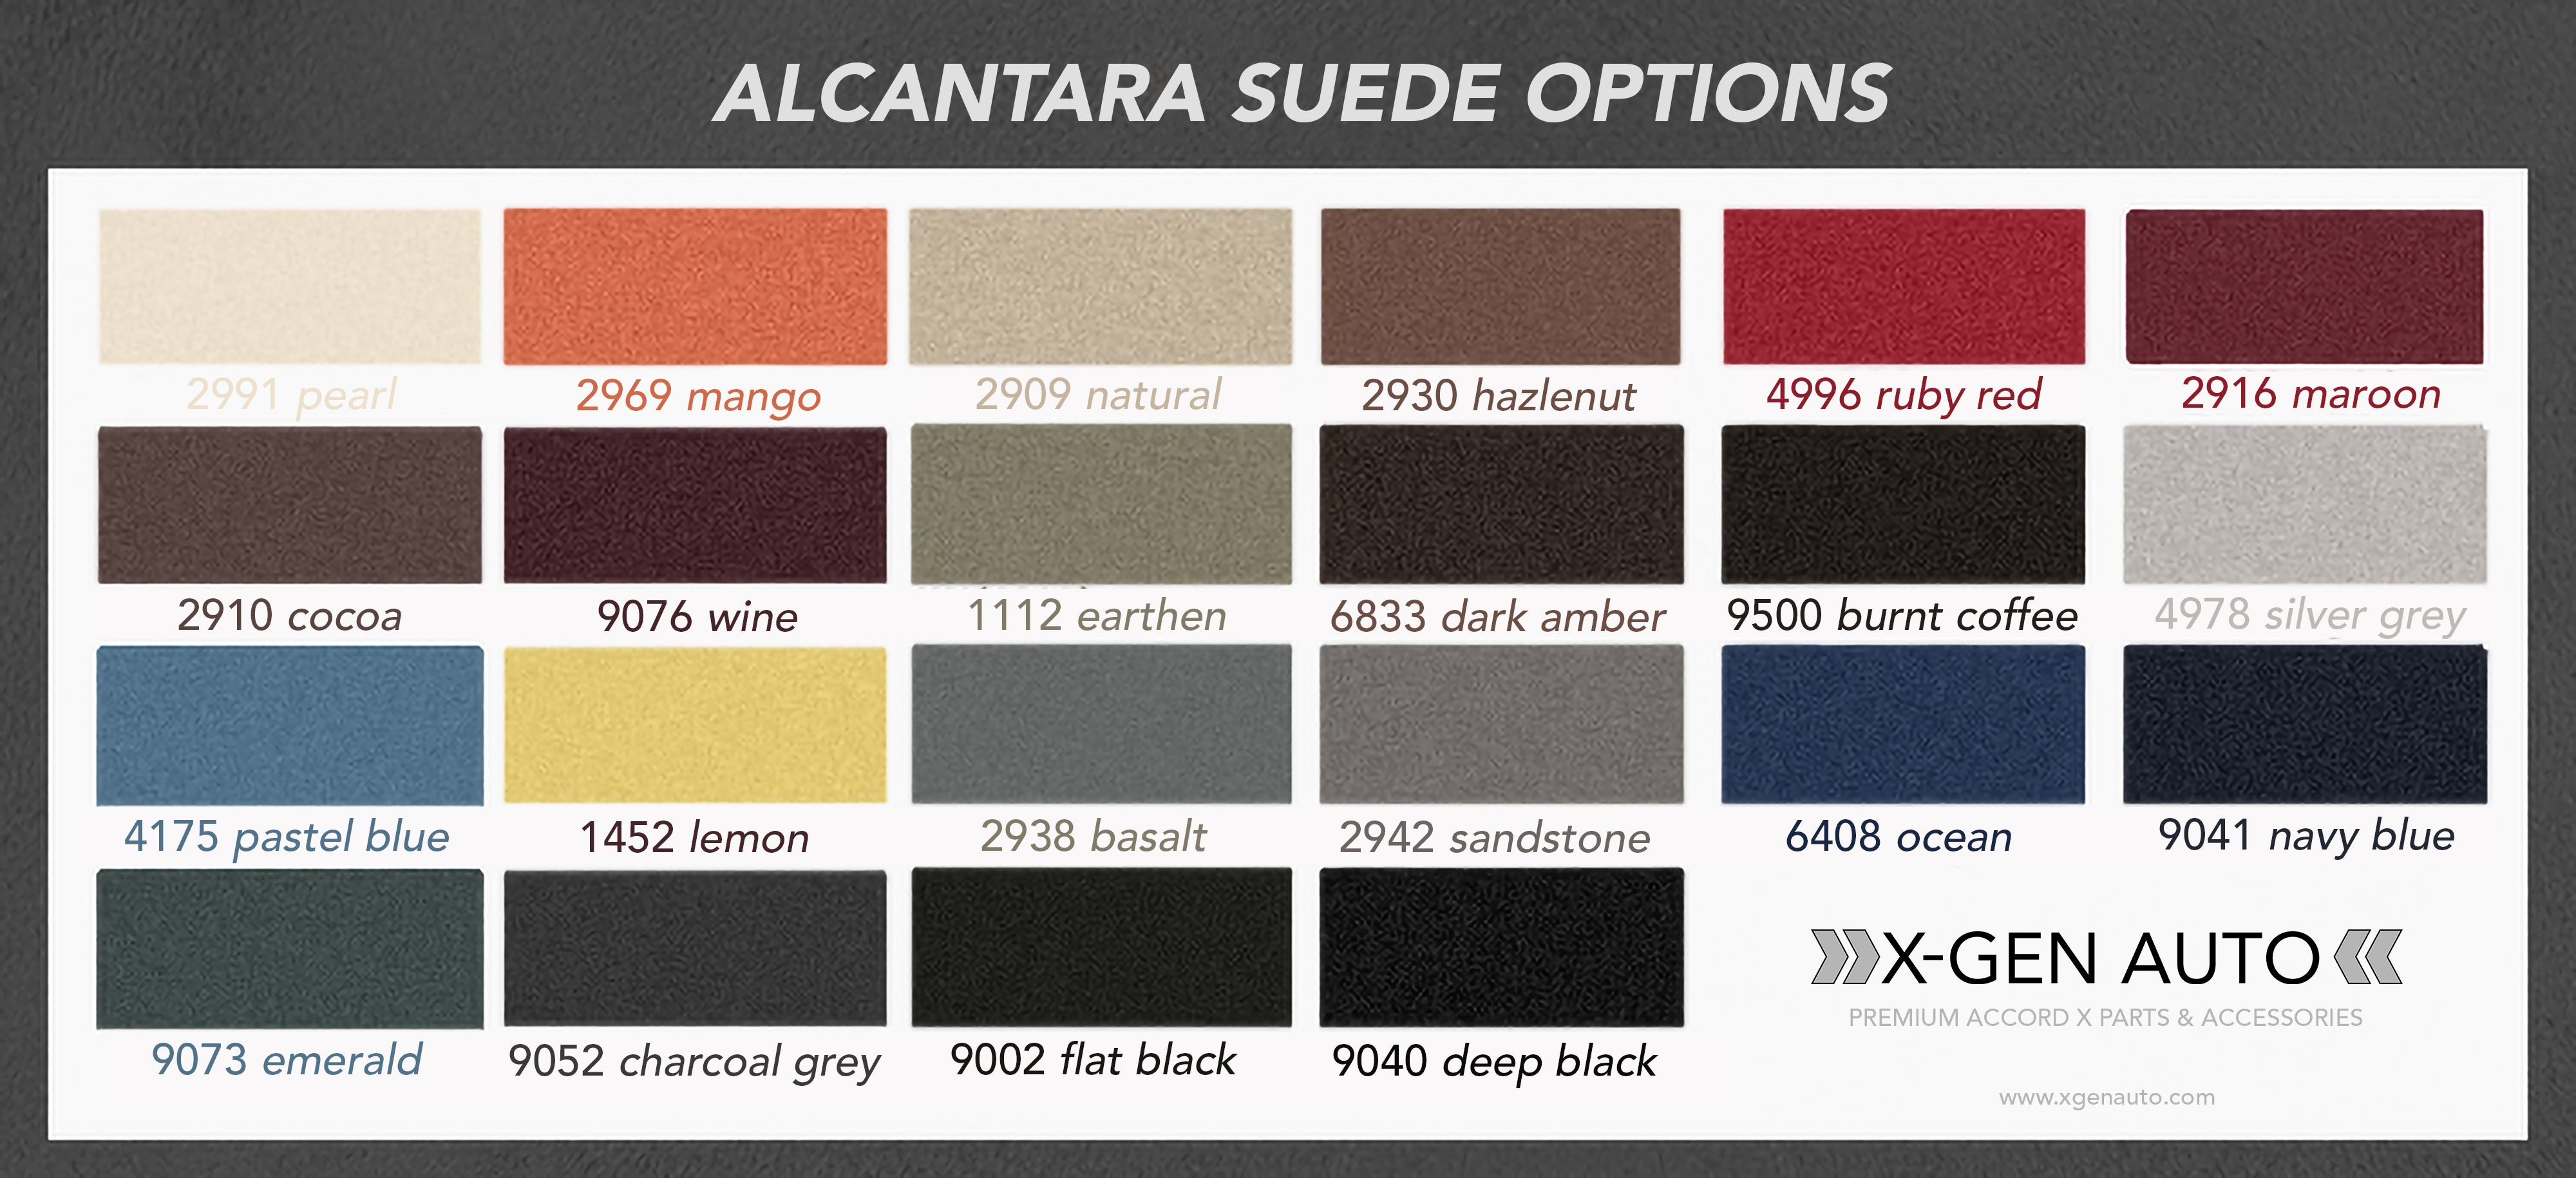 ALCANTARA SUEDE COLOR OPTIONS